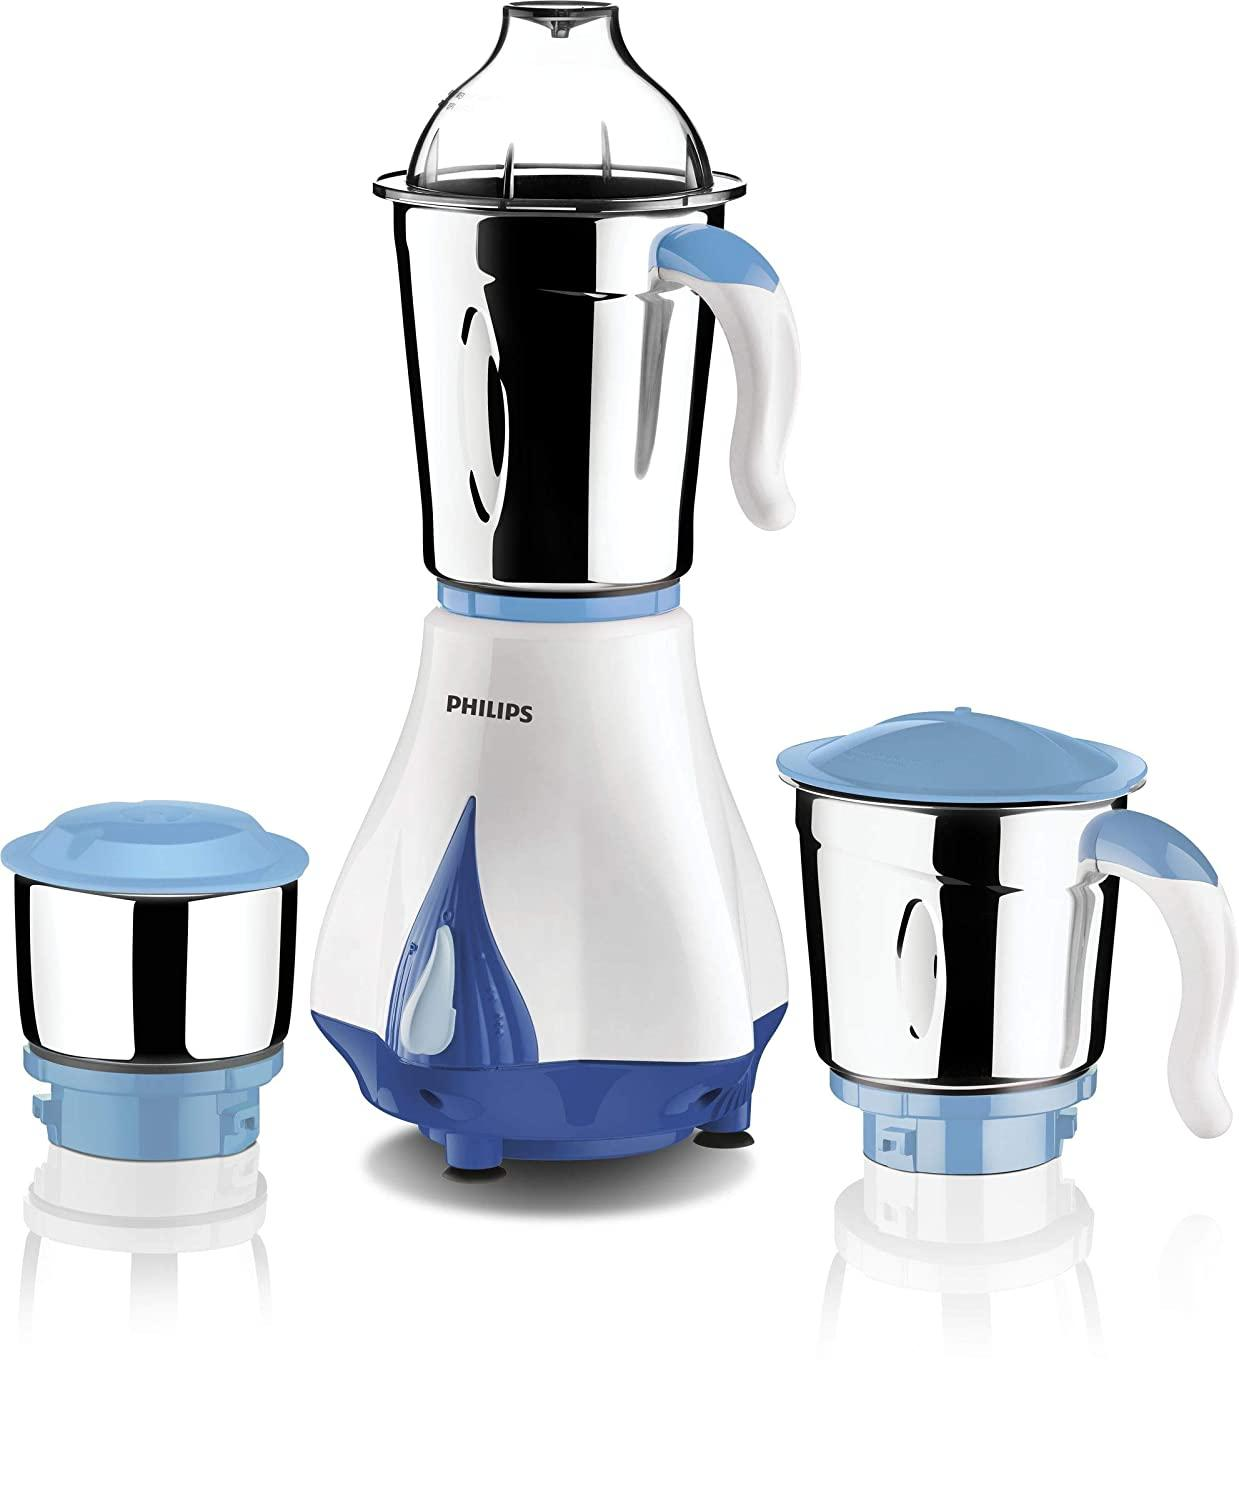 Philips Daily Collection HL7511 550 W Mixer Grinder